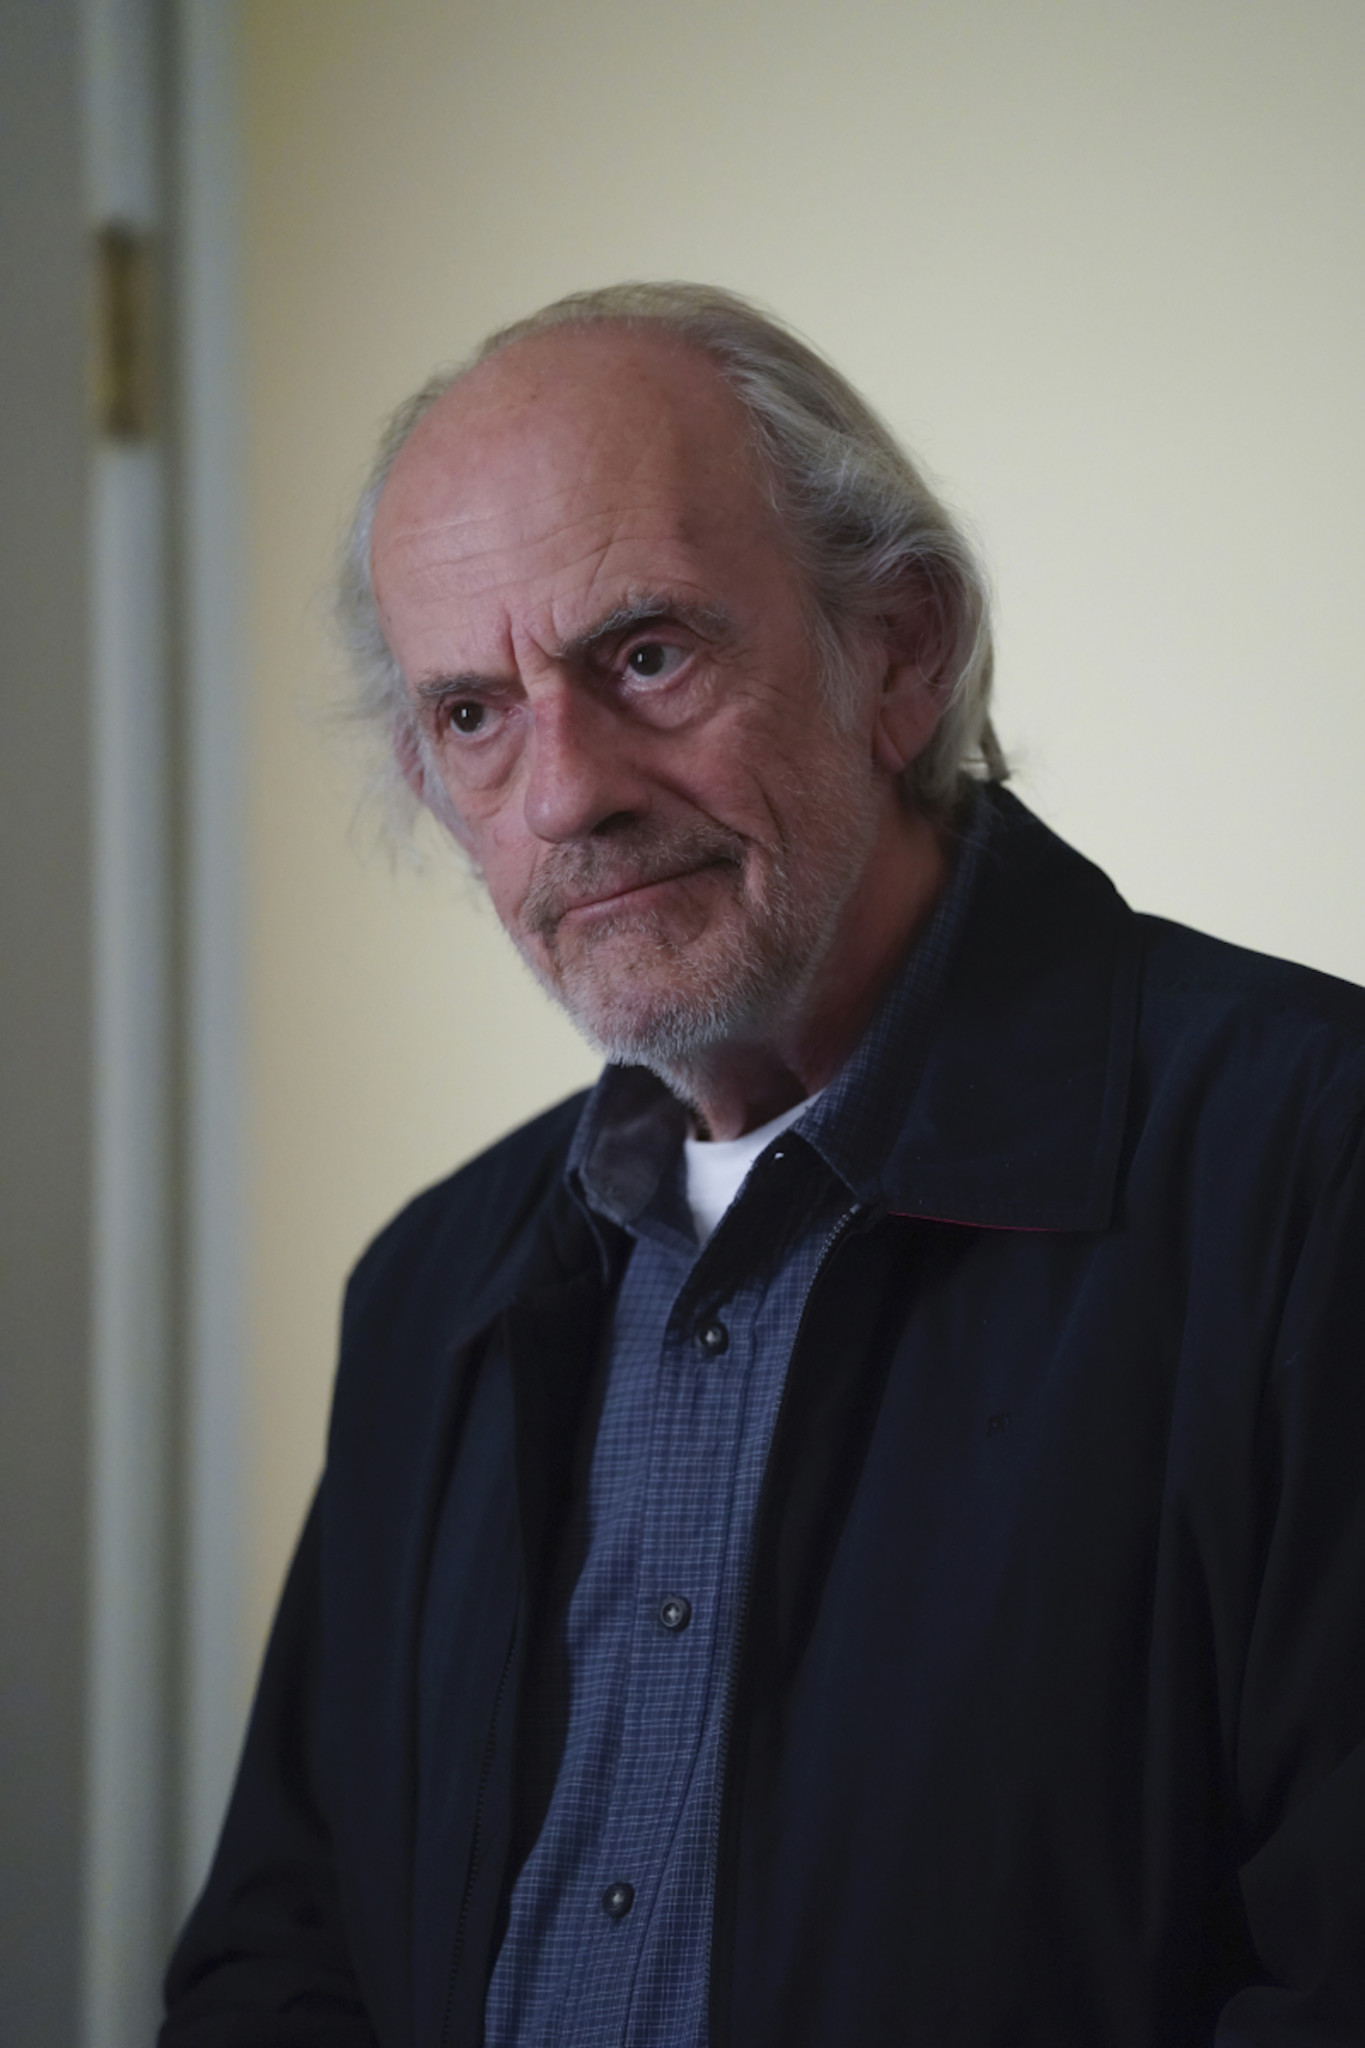 NCIS Season 17 Episode 20 Christopher Lloyd The Arizona